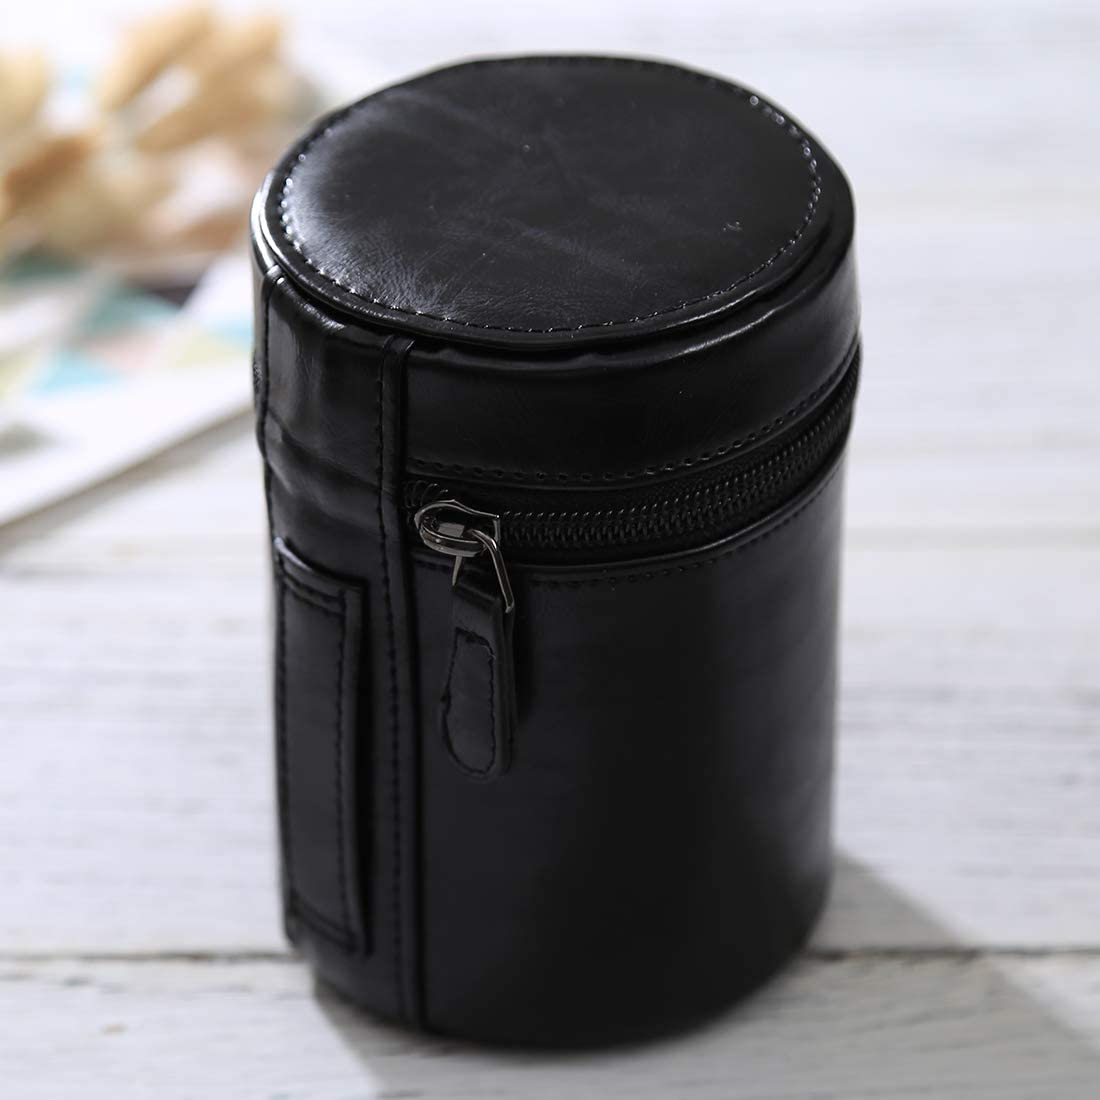 Size: 13x9x9cm HUANGMENG Bag Medium Lens Case Zippered PU Leather Pouch Box for DSLR Camera Lens Black HUANGMENG Color : Black